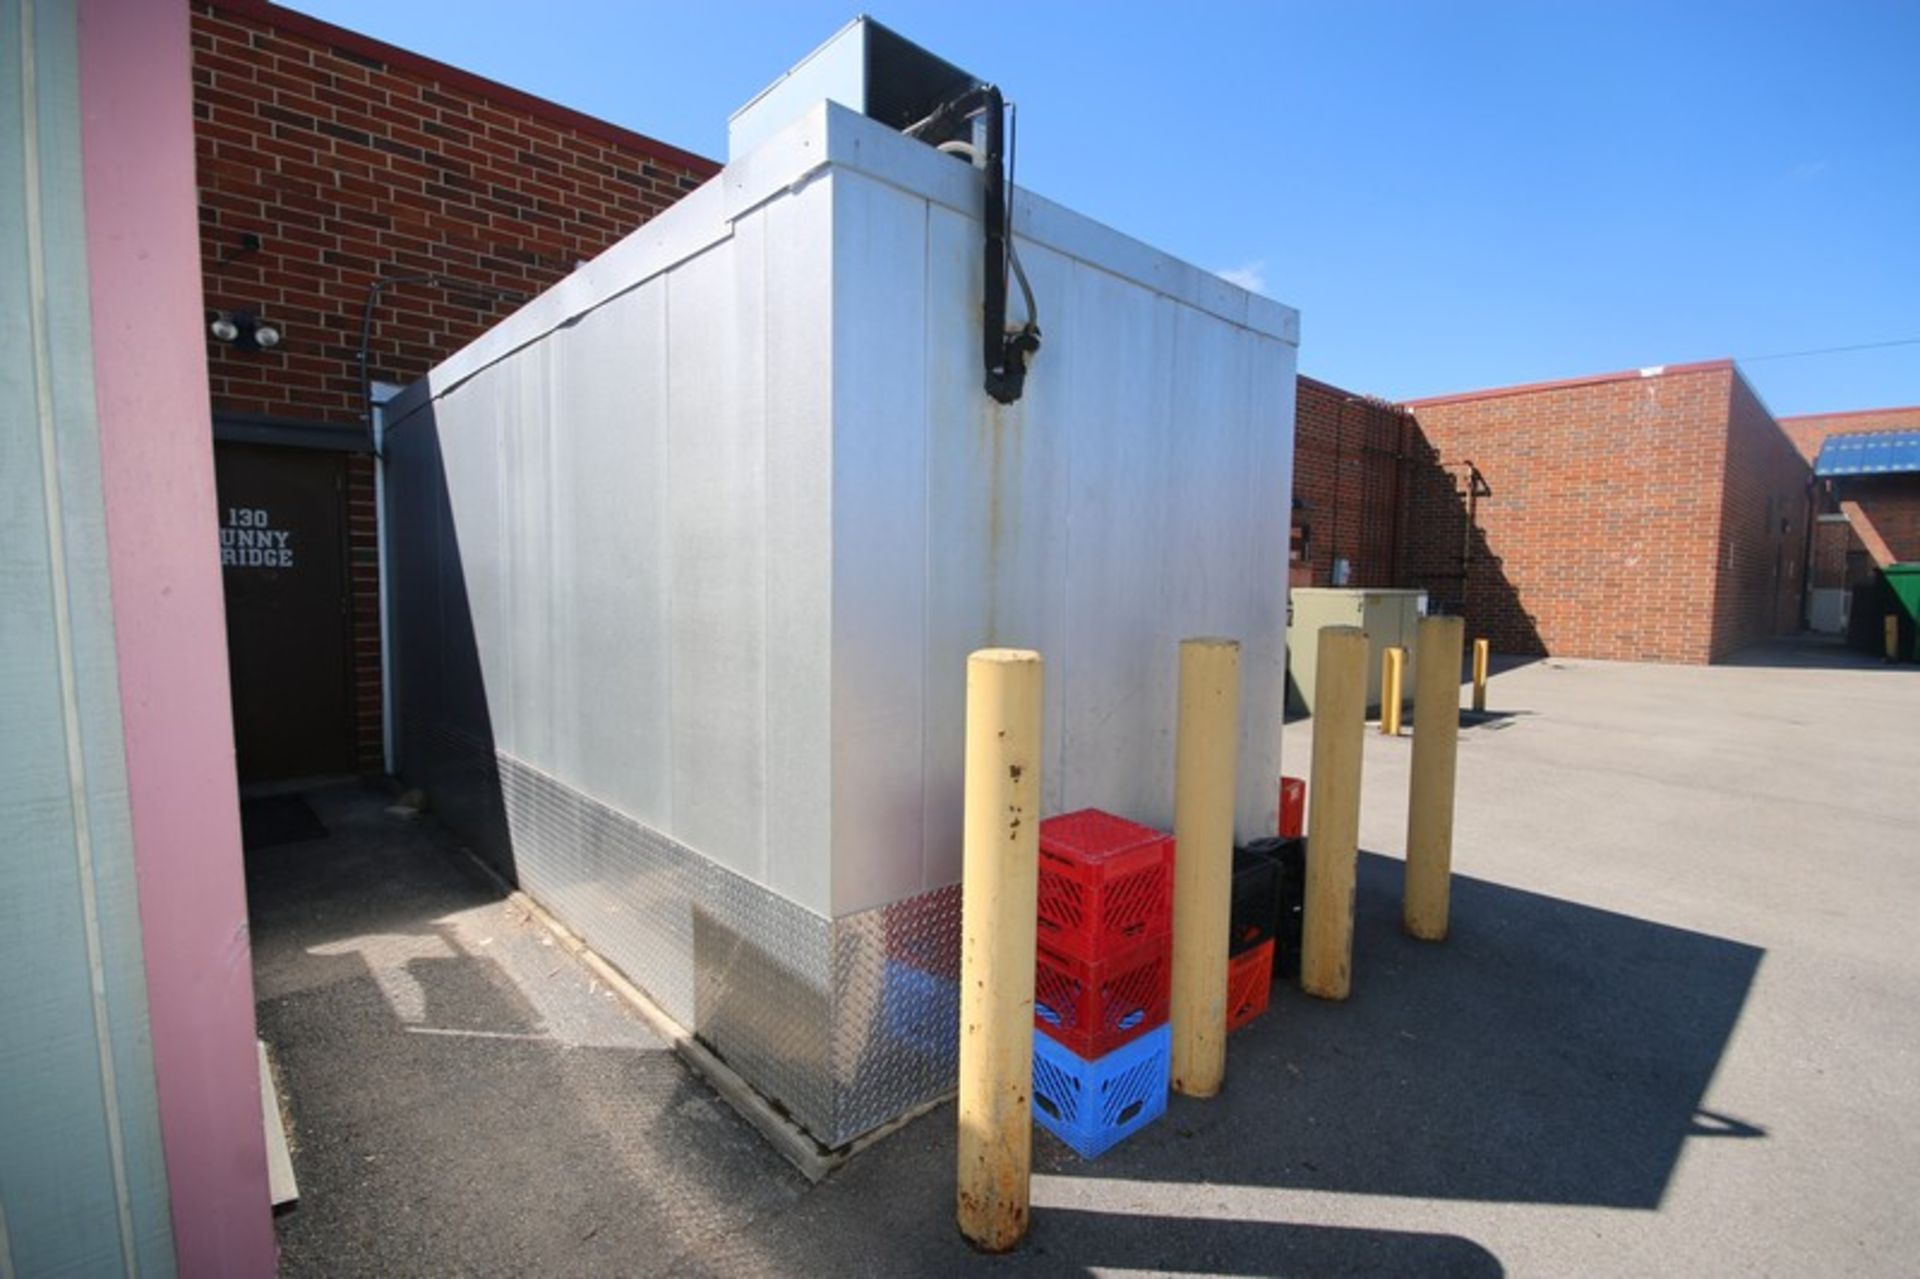 Harford Dual Compartment Walk-In Cooler & Freezer, S/N 410021576 & 410021576, Compartment Sizes: